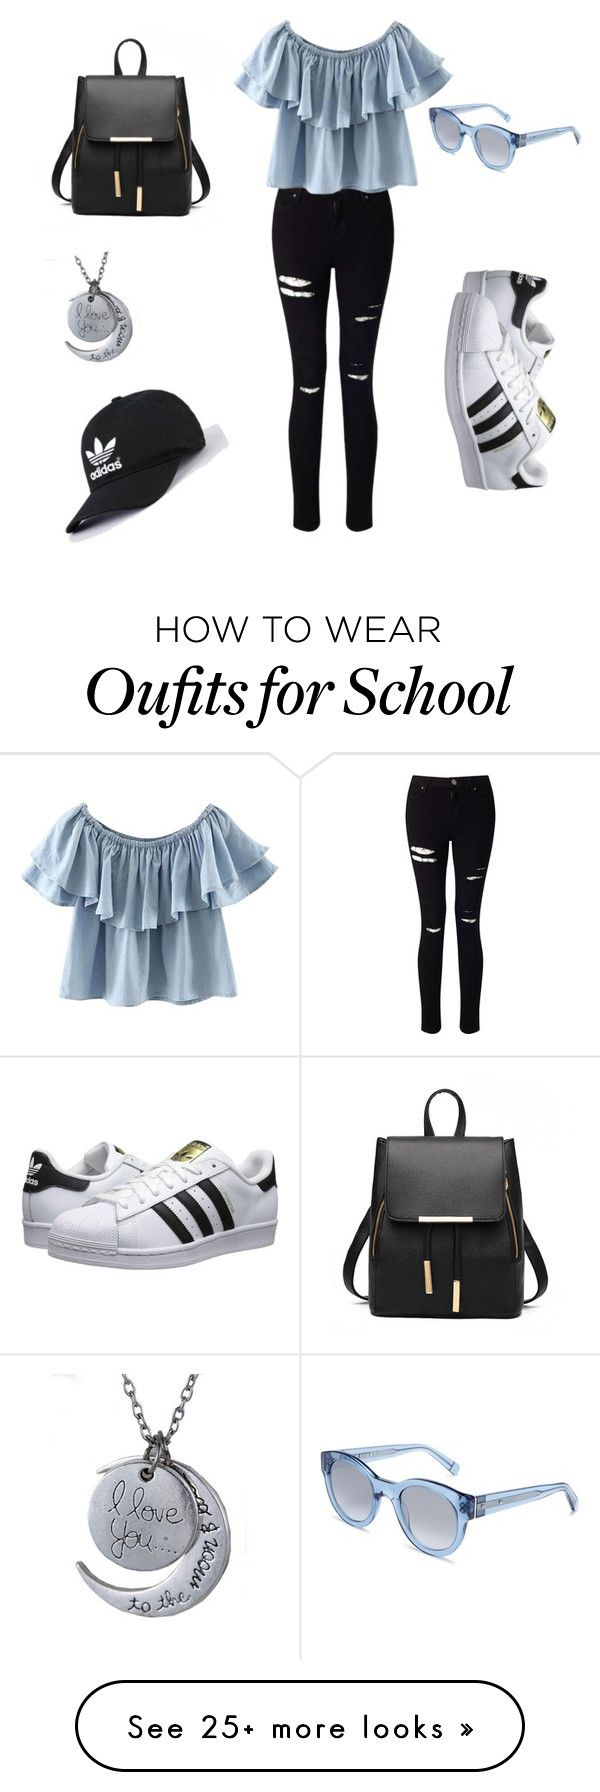 School Outfit ❤️ by maonenaisse on Polyvore featuring Miss Selfridge, Chicnova Fashion, adidas Originals and Bobbi Brown Cosmetics